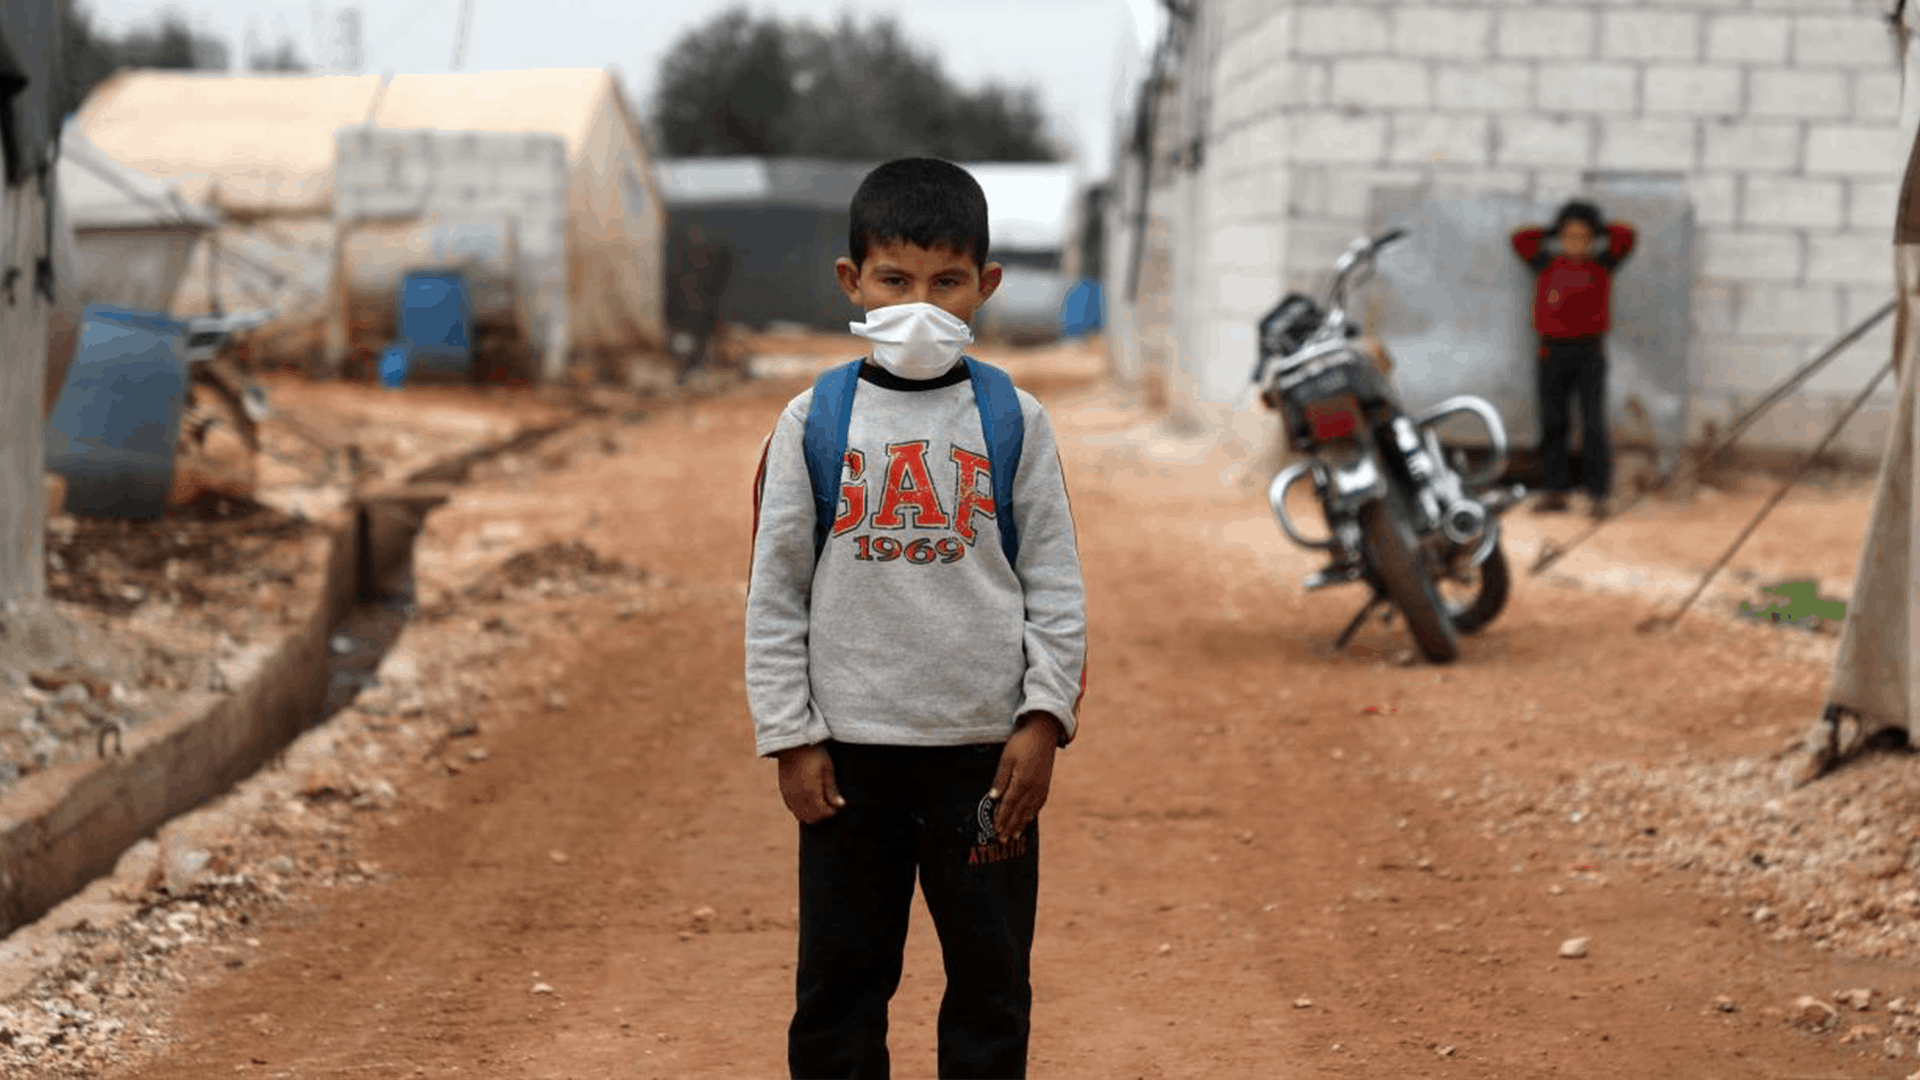 Boy in refugee camp with face mask